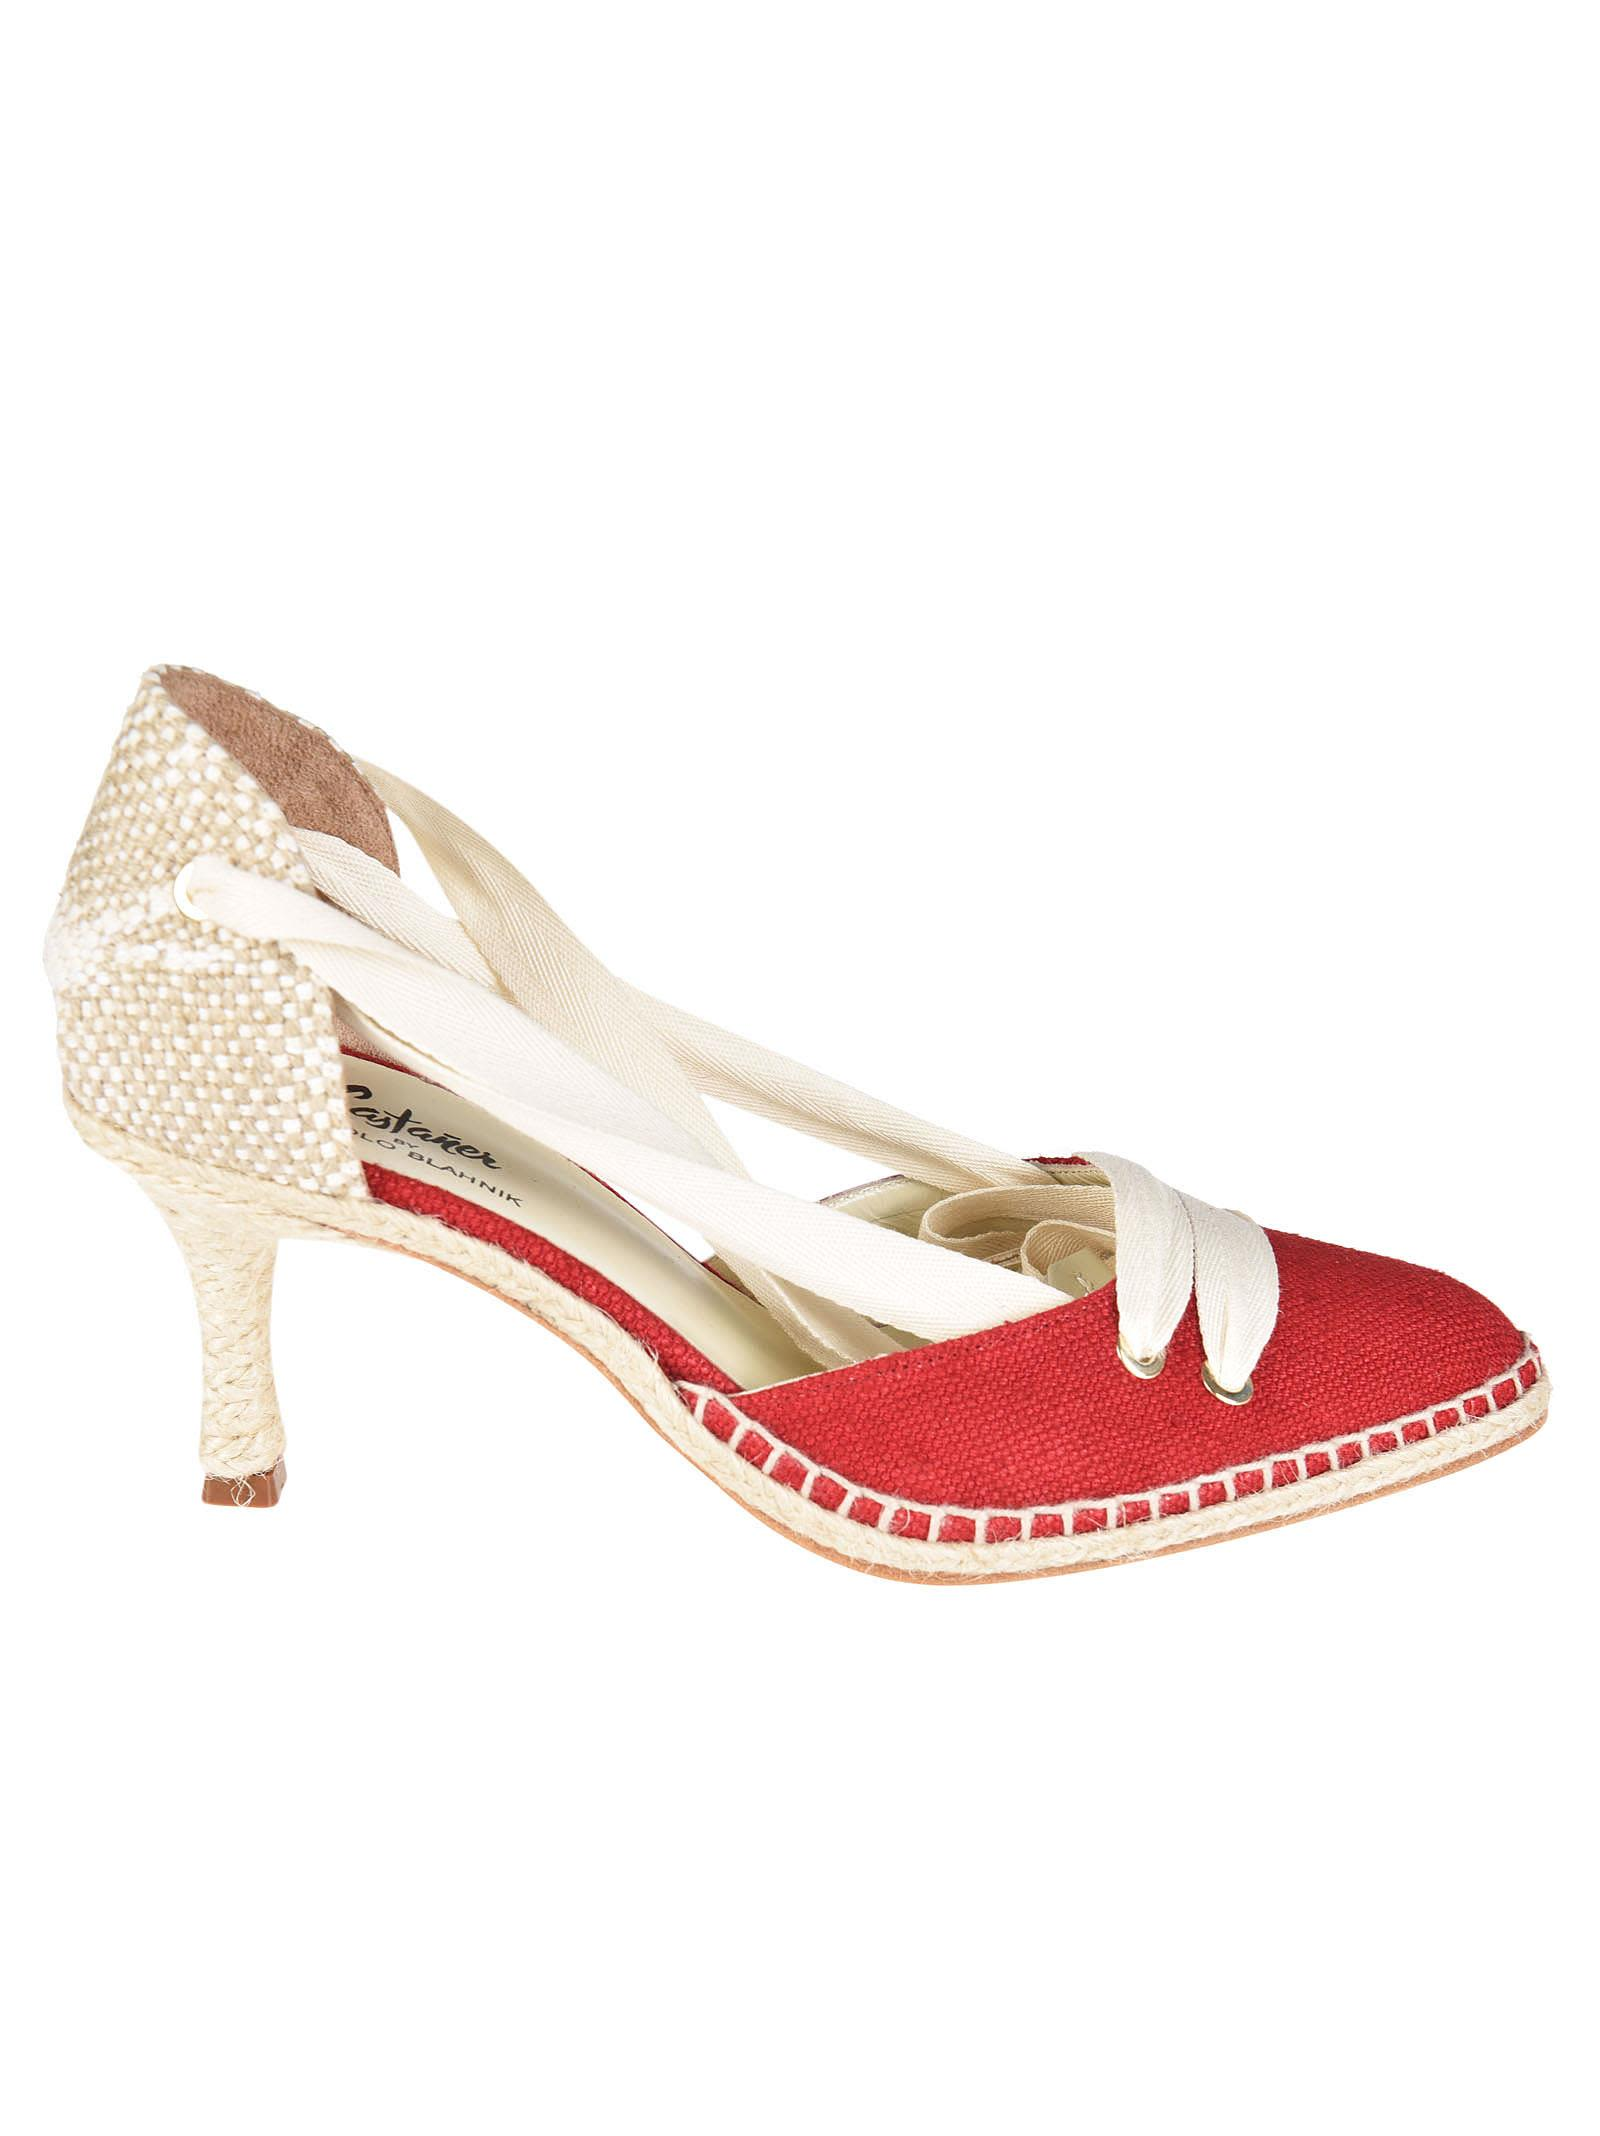 Castaner By Manolo Blahnik 70 Pumps